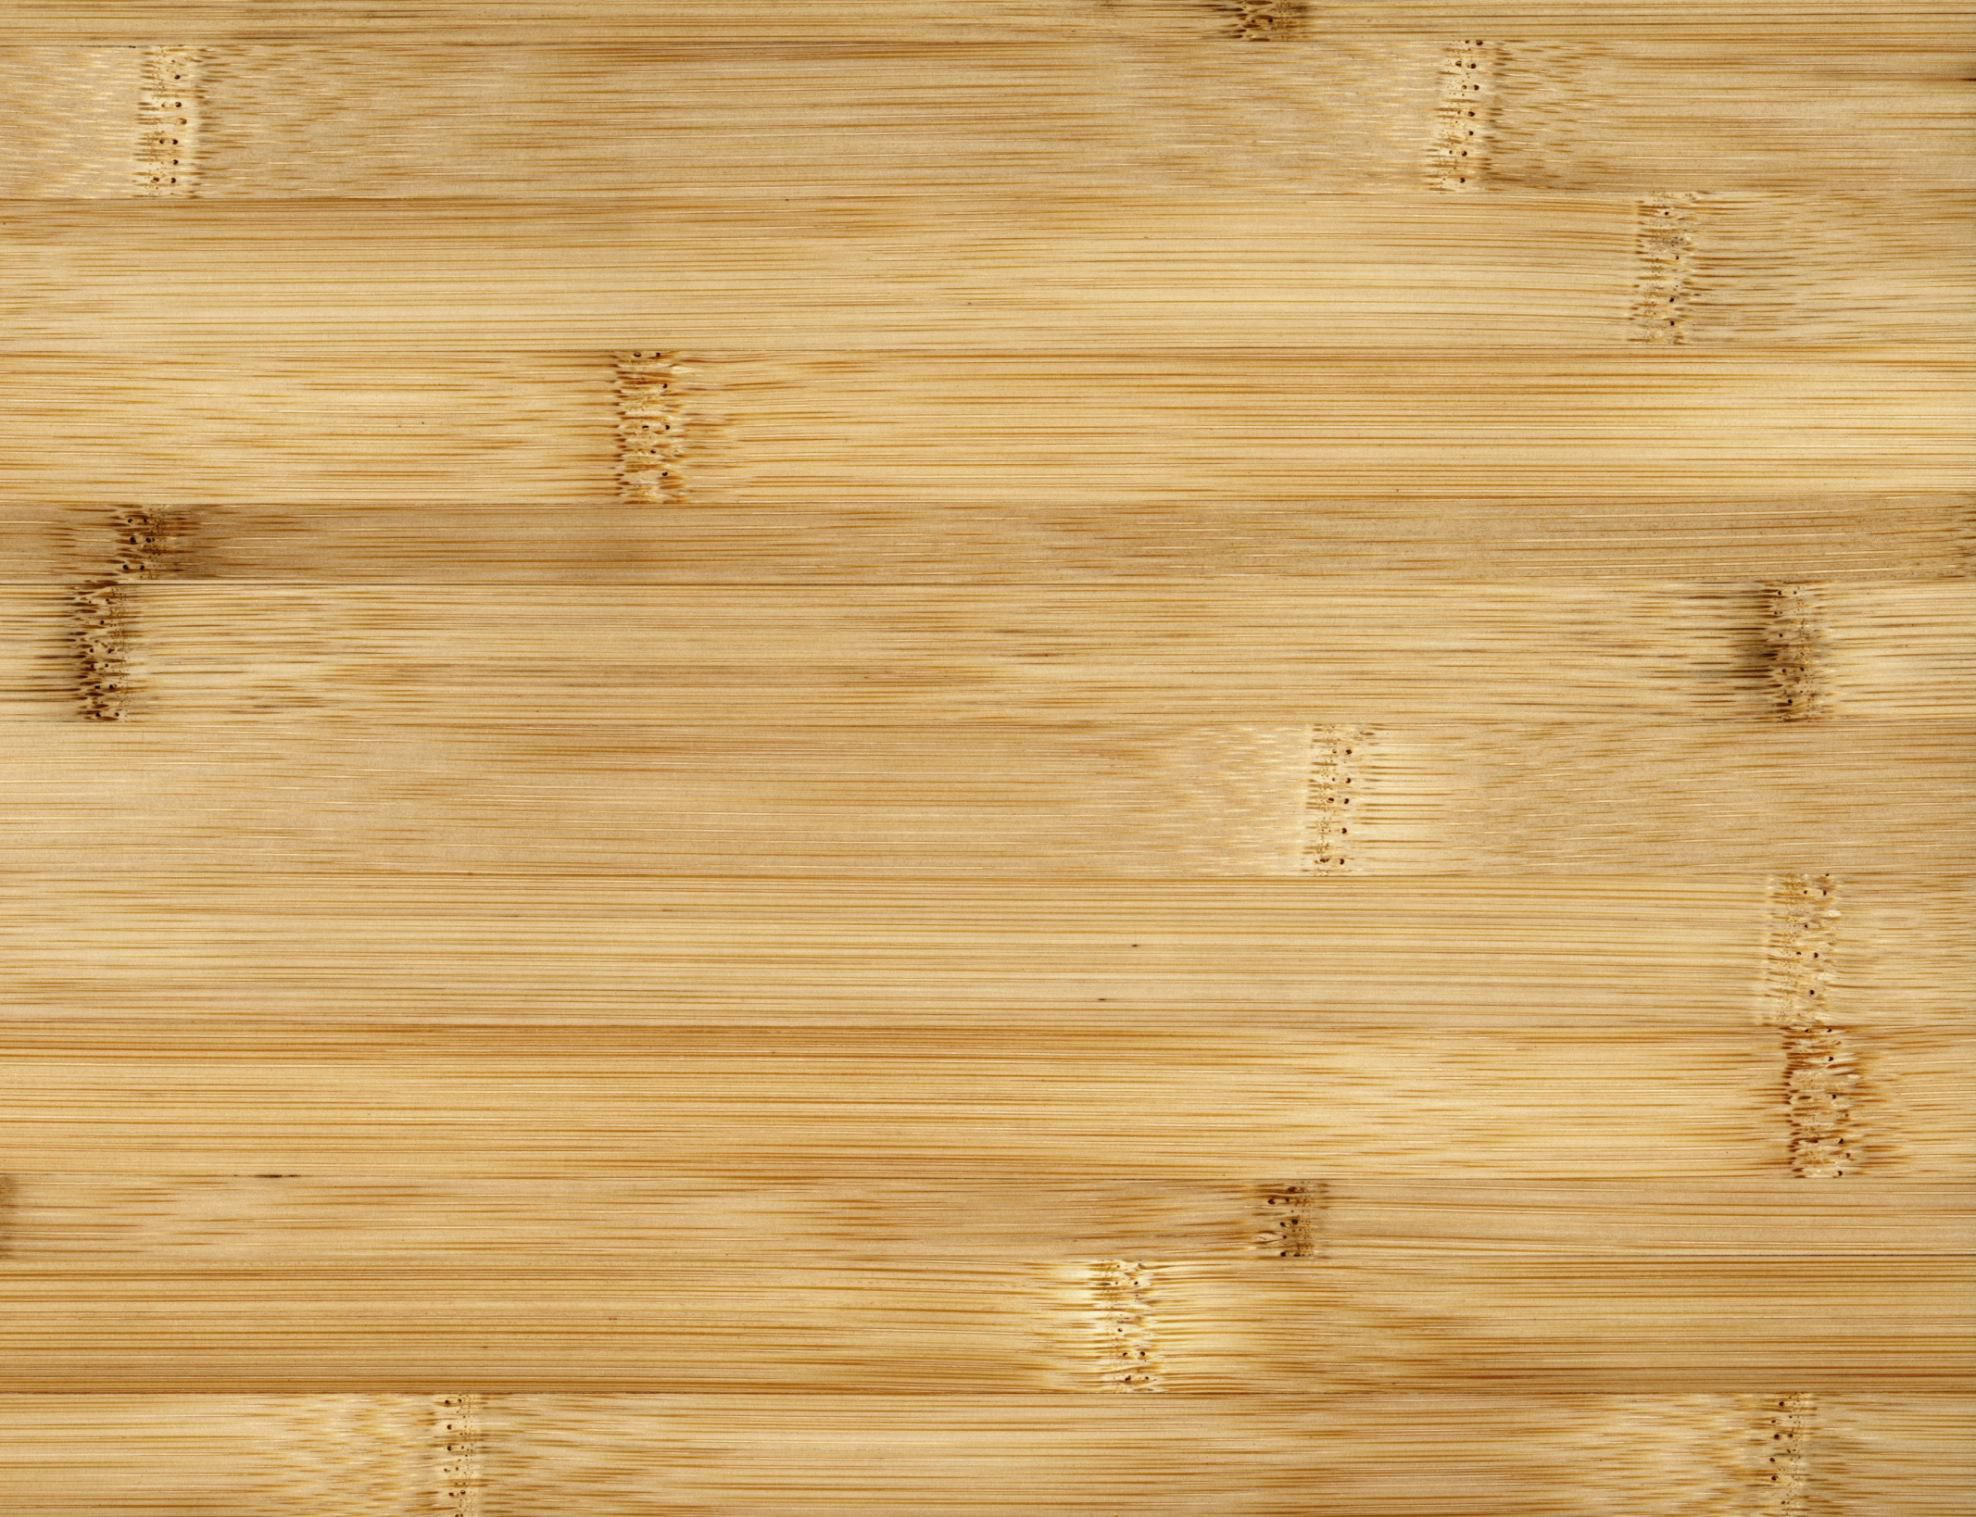 How To Clean Bamboo Flooring - Best place to buy bamboo flooring